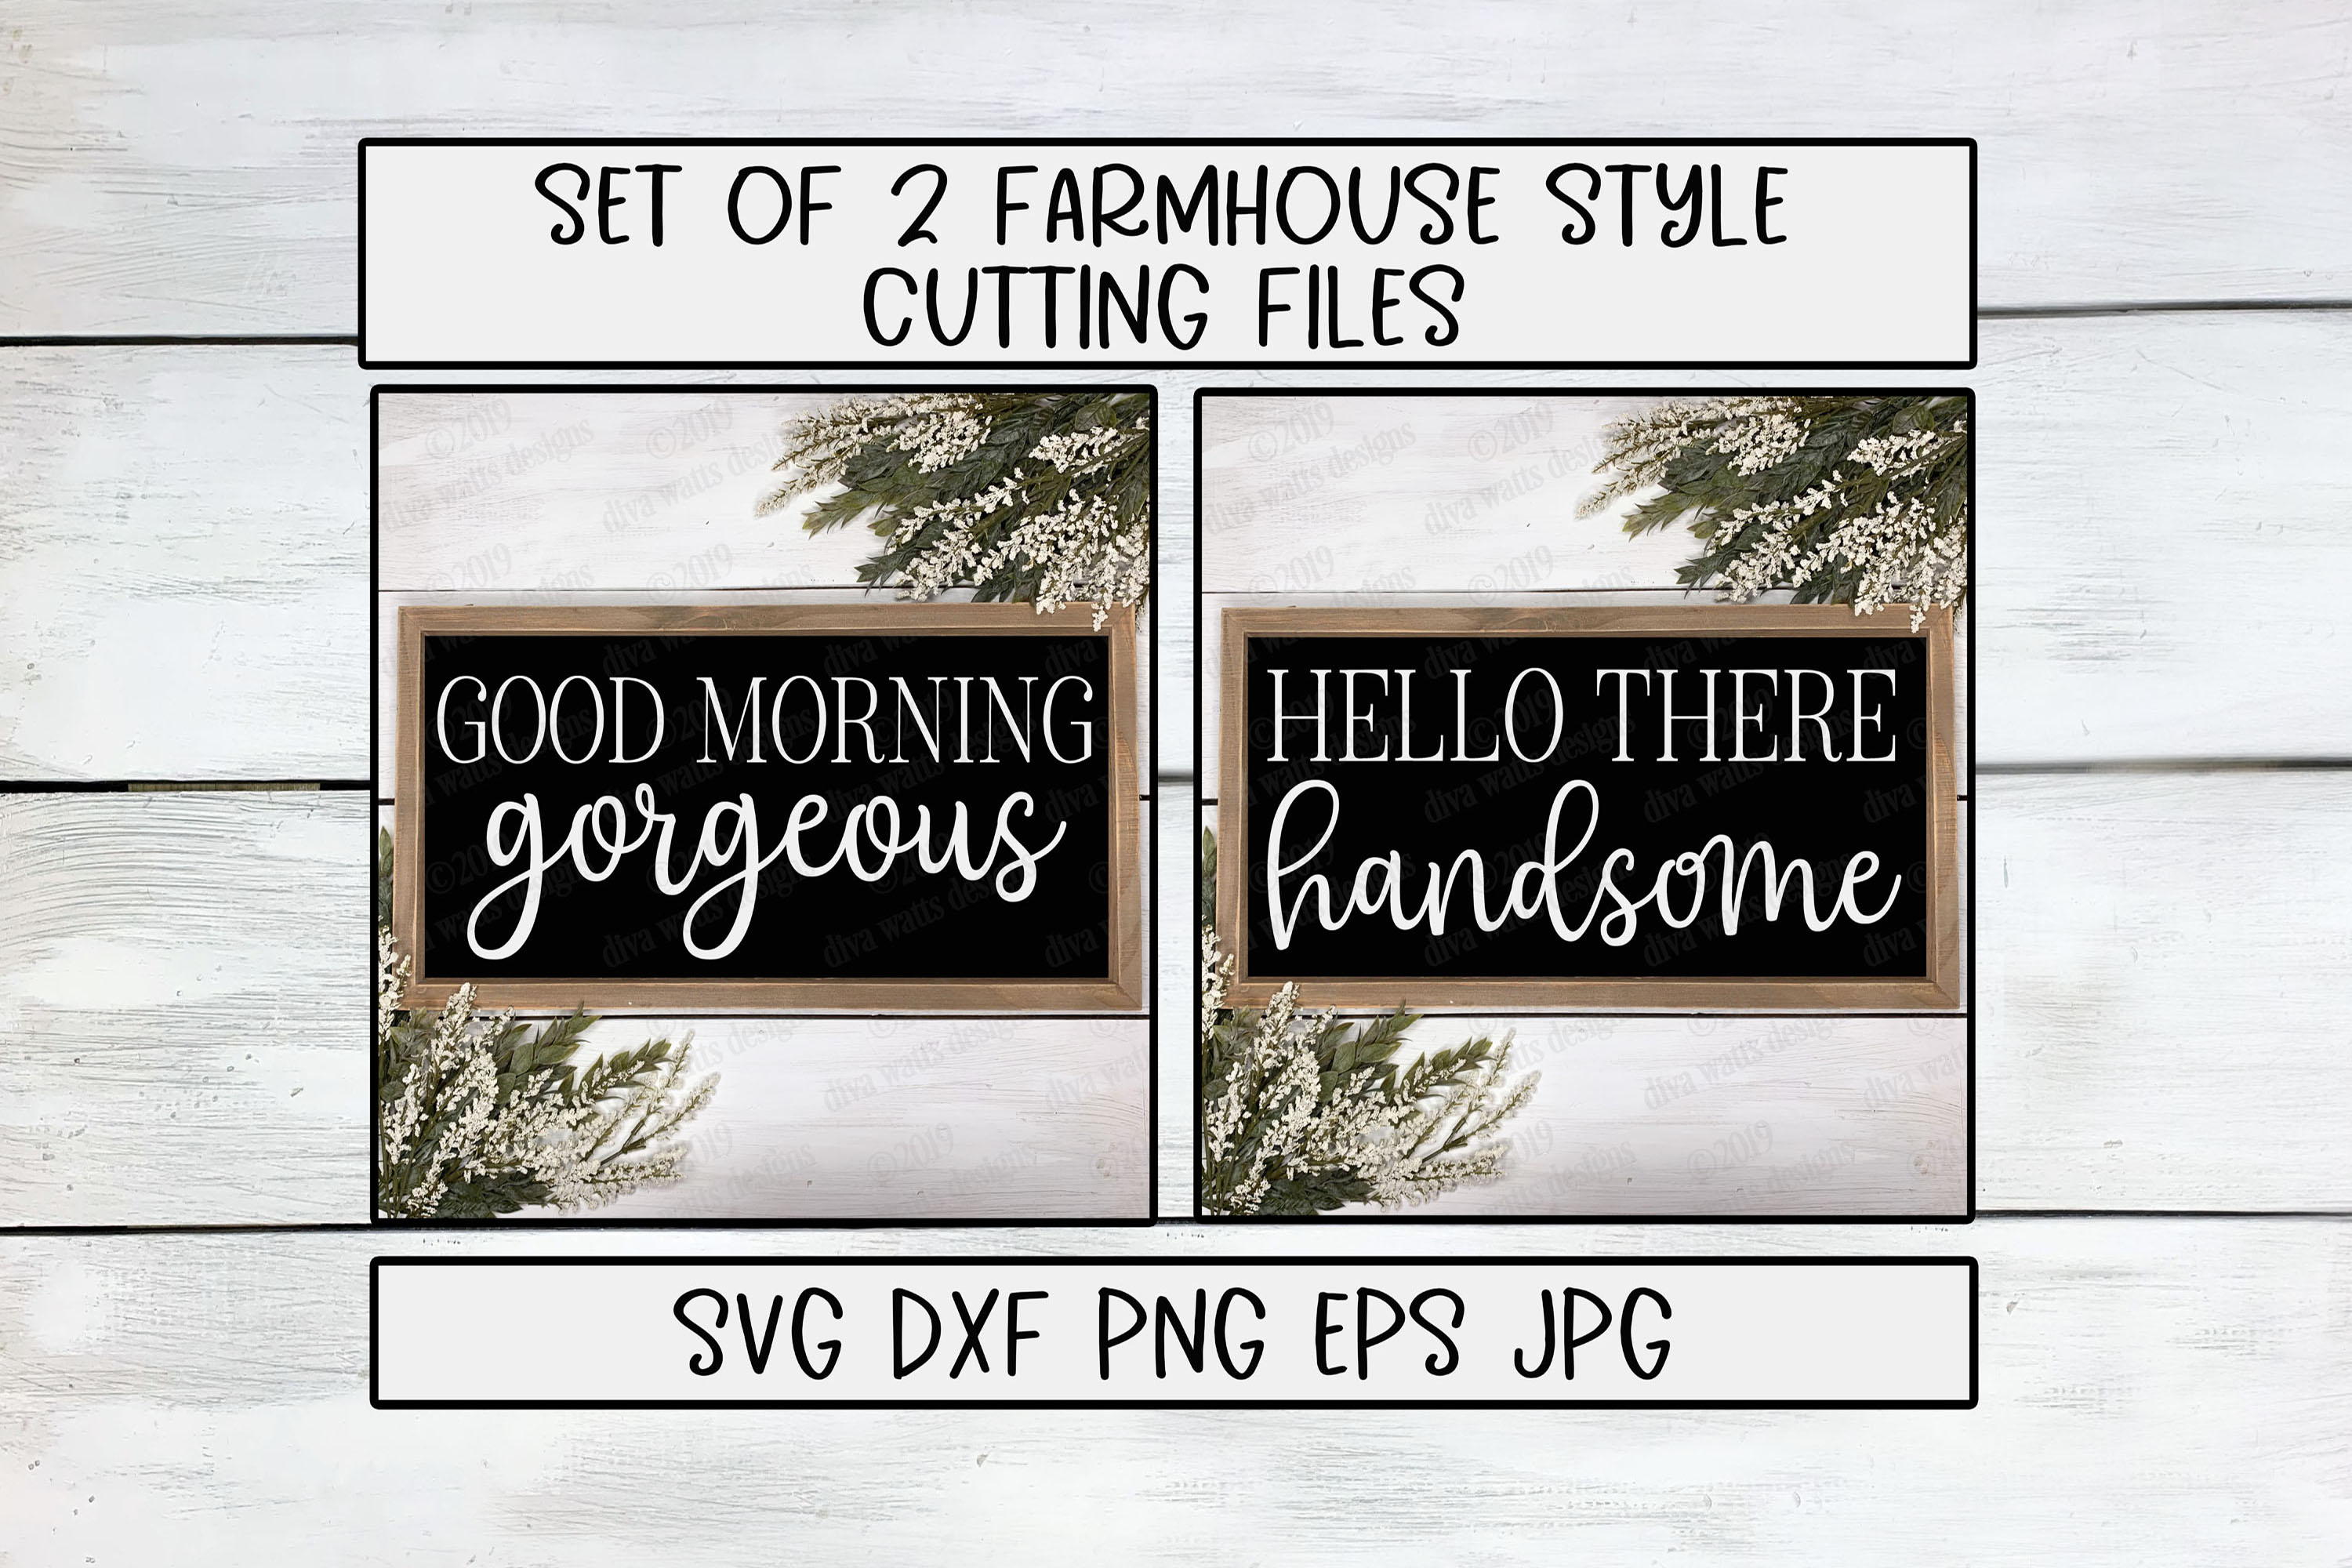 Good Morning Gorgeous Hello There Handsome Cutting Files Set example image 2